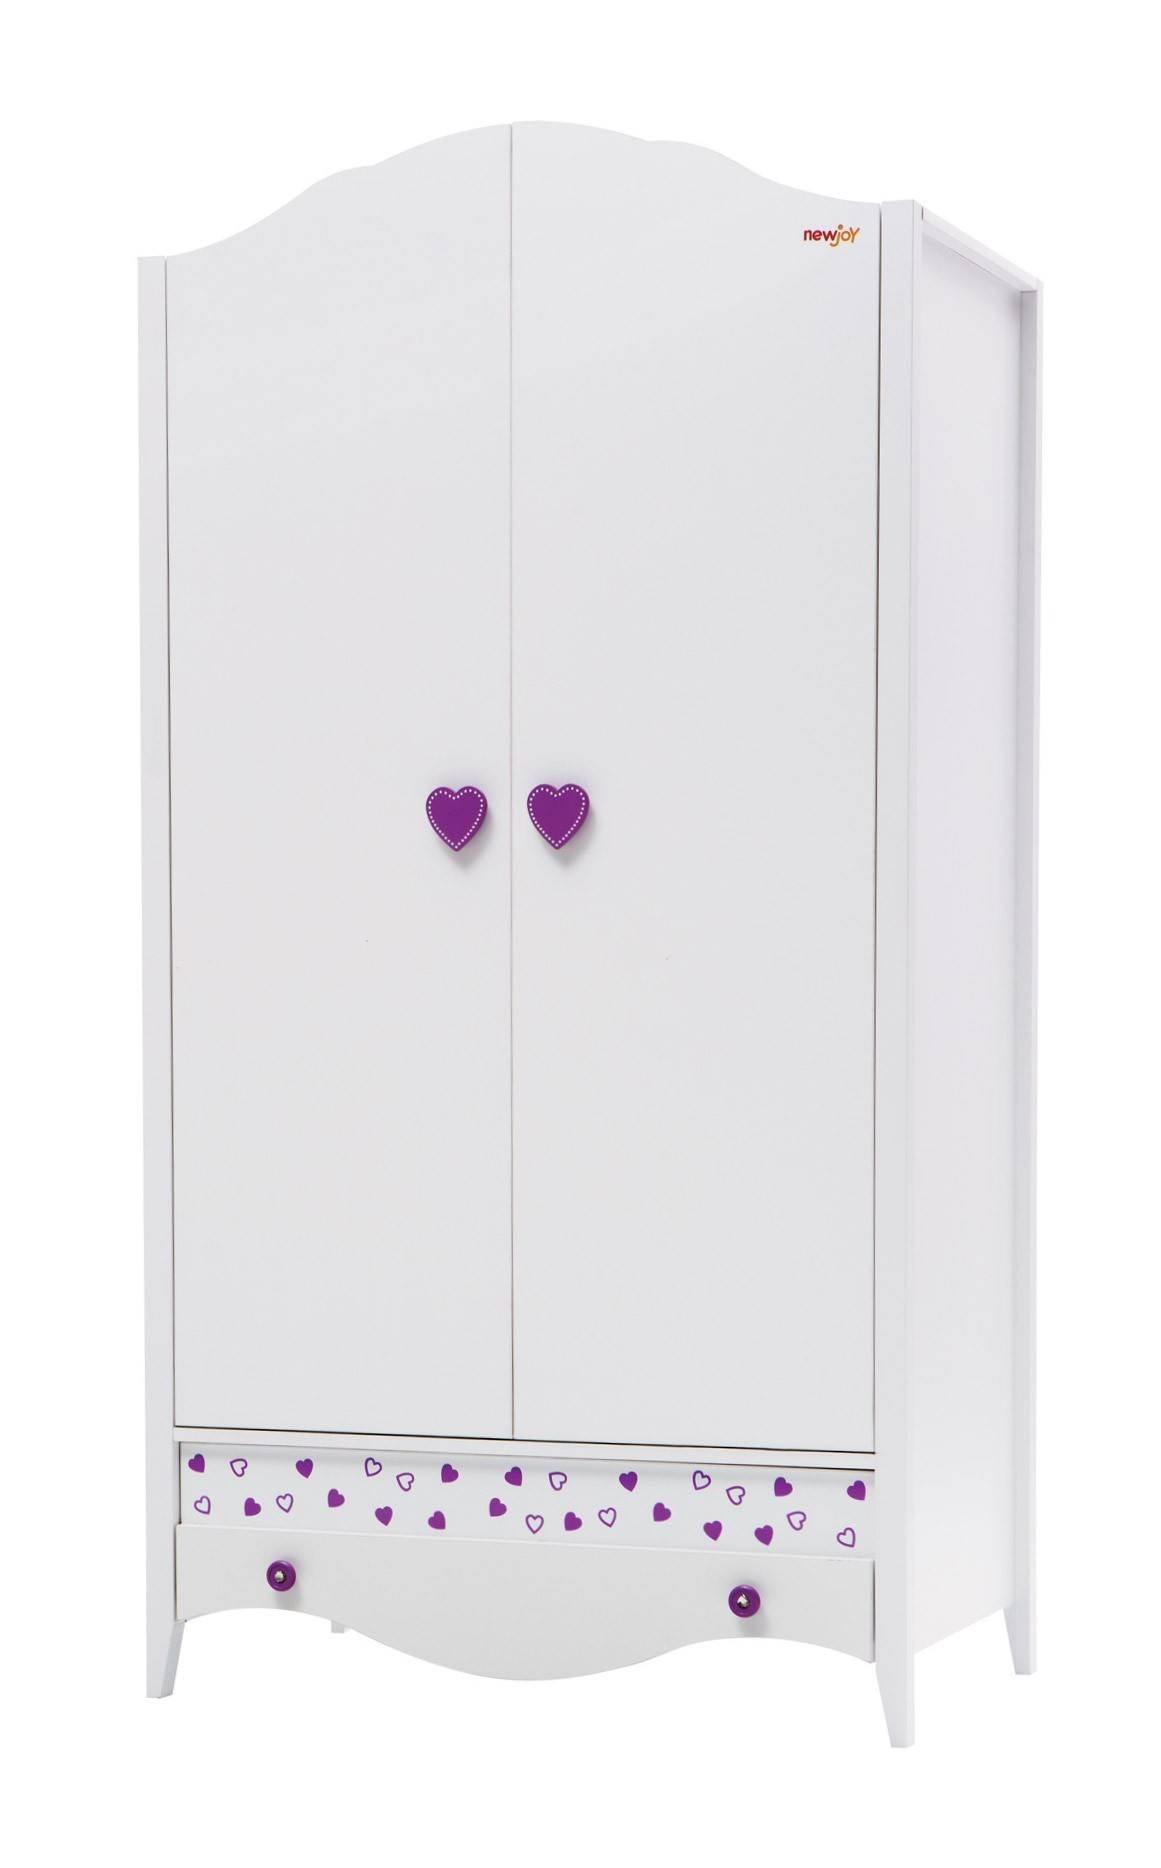 Newjoy Princess Children's 2 Door Wardrobe intended for The Princess Wardrobes (Image 5 of 15)